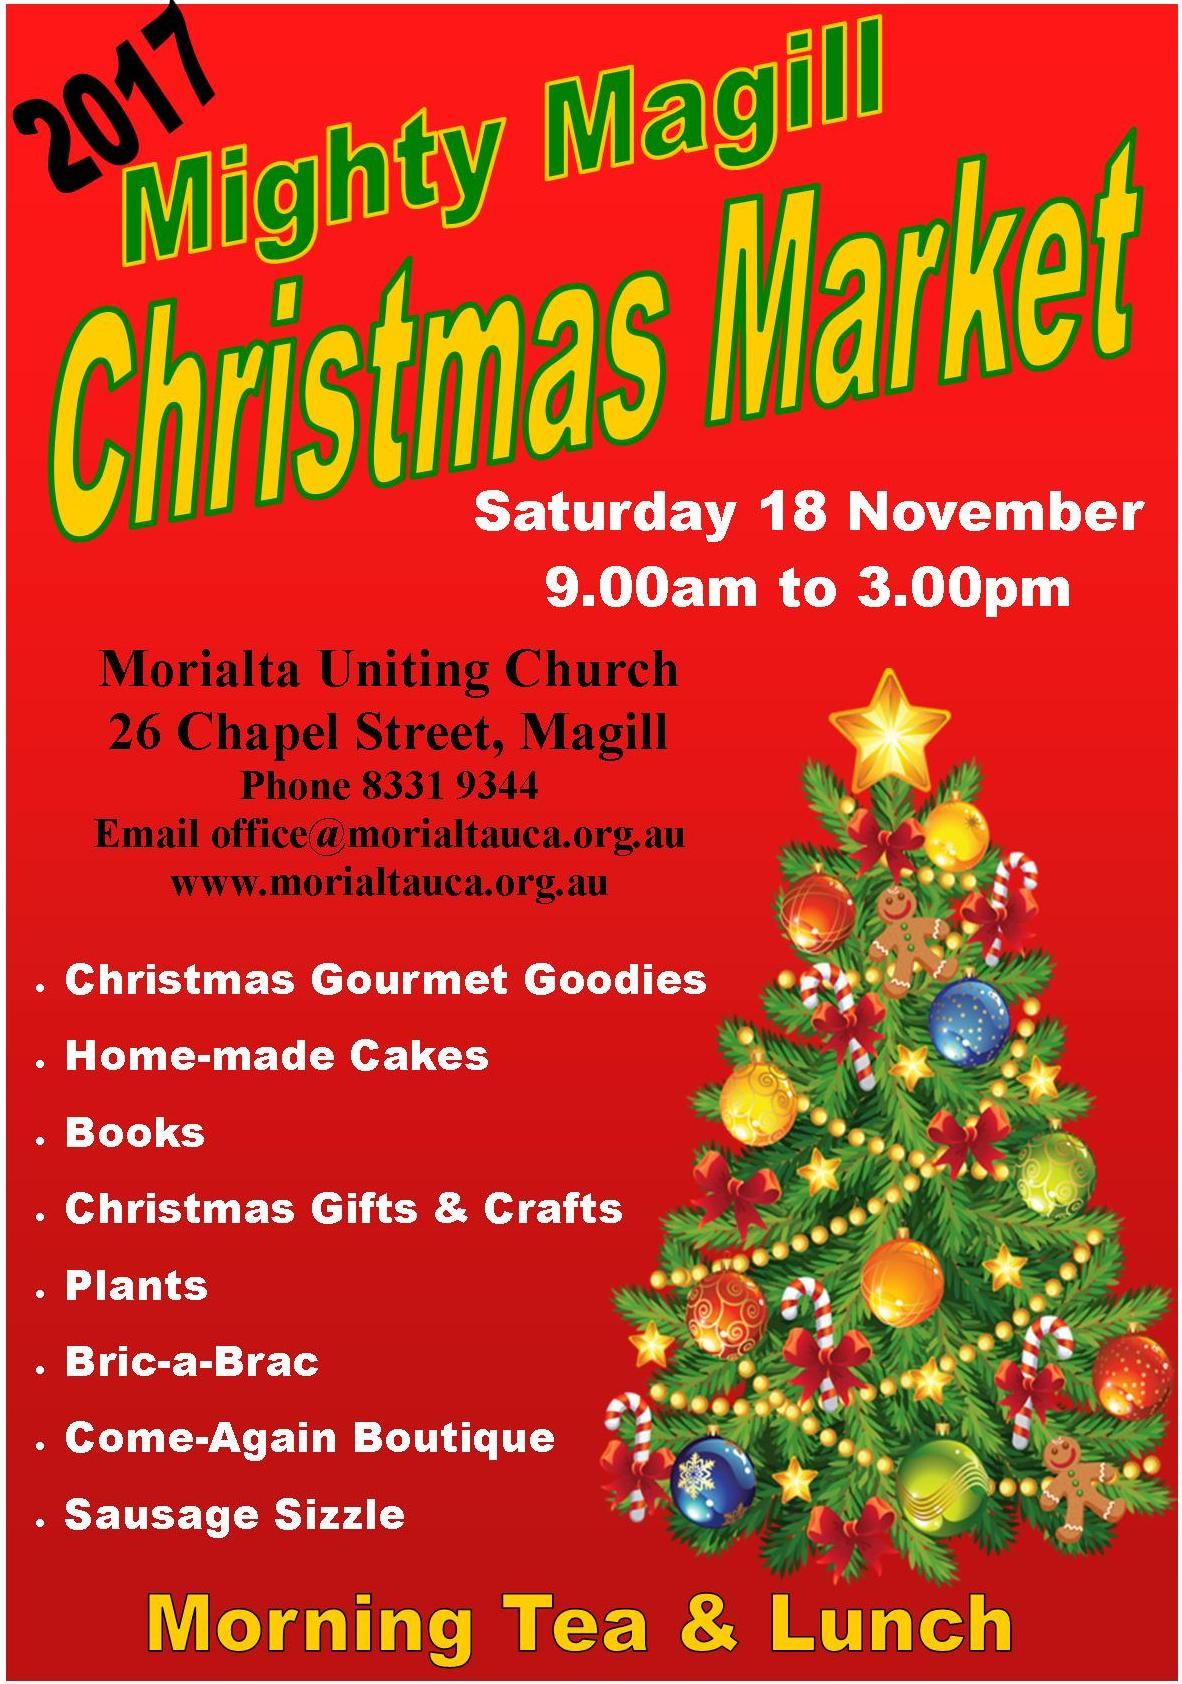 2017 Mighty Magill Christmas market